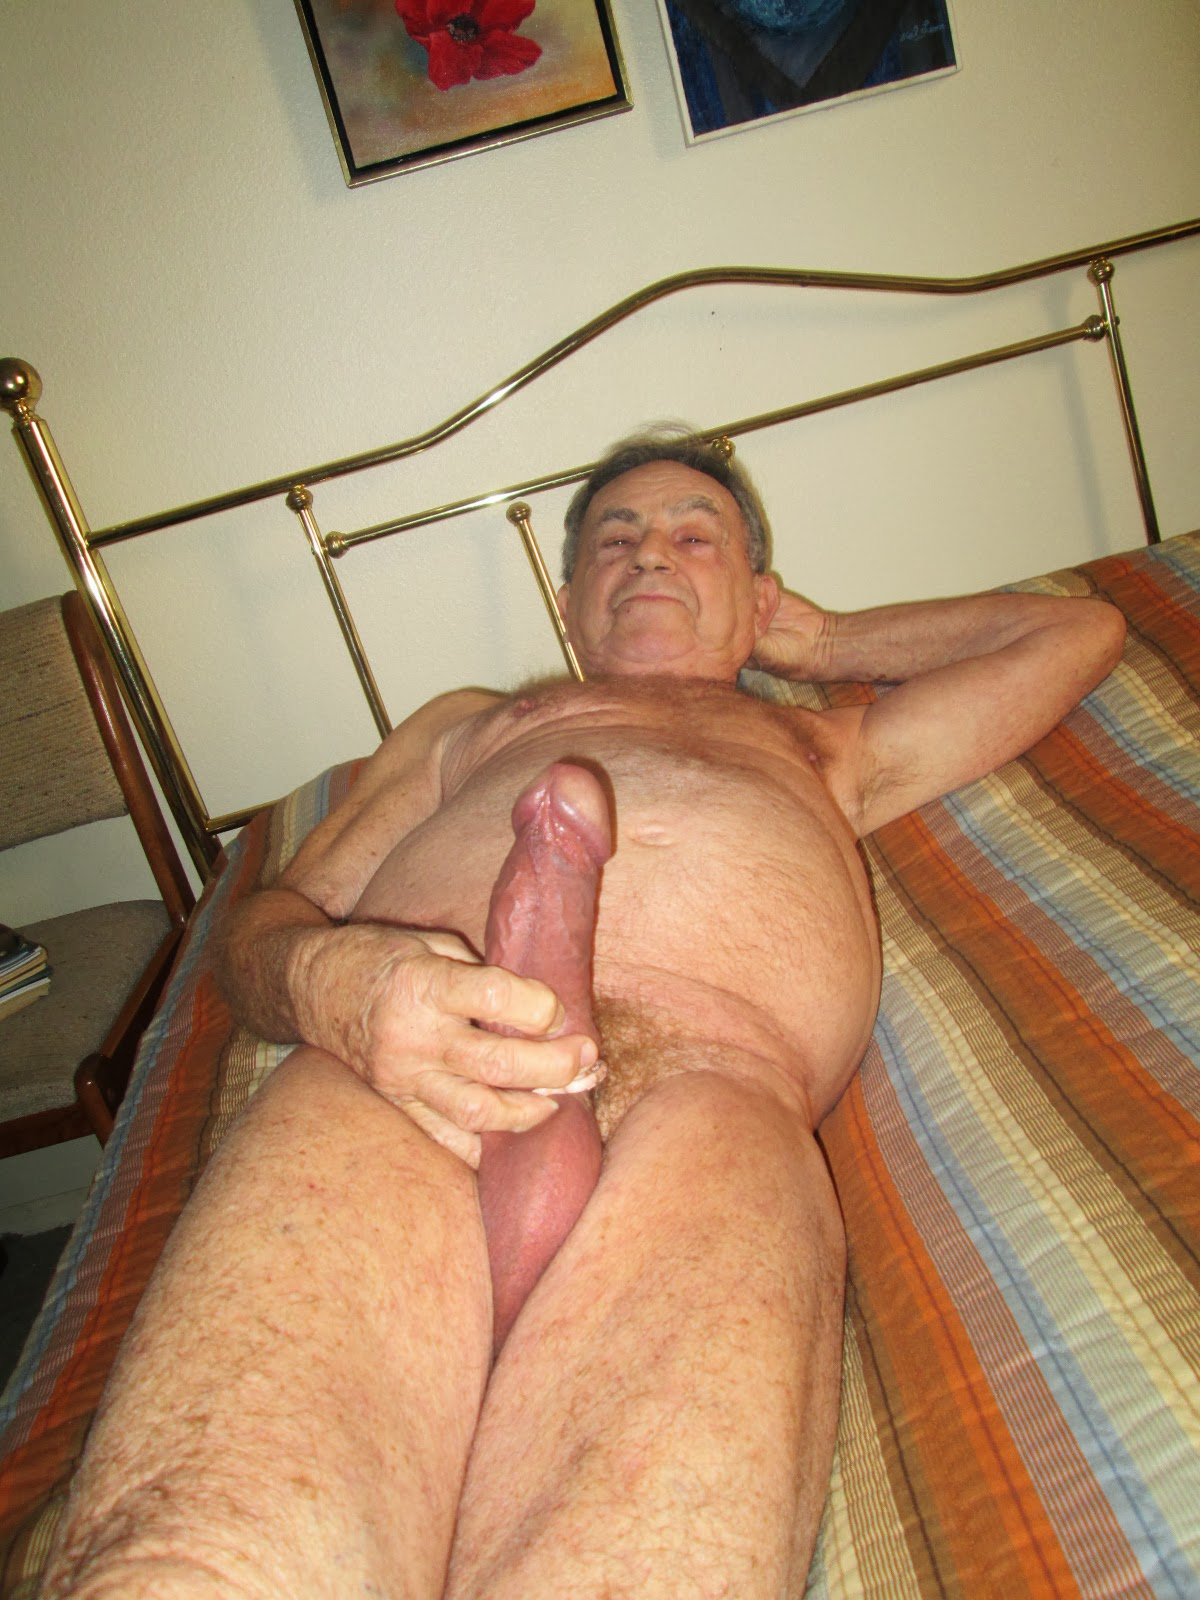 Love the horny grandpa cock did die?